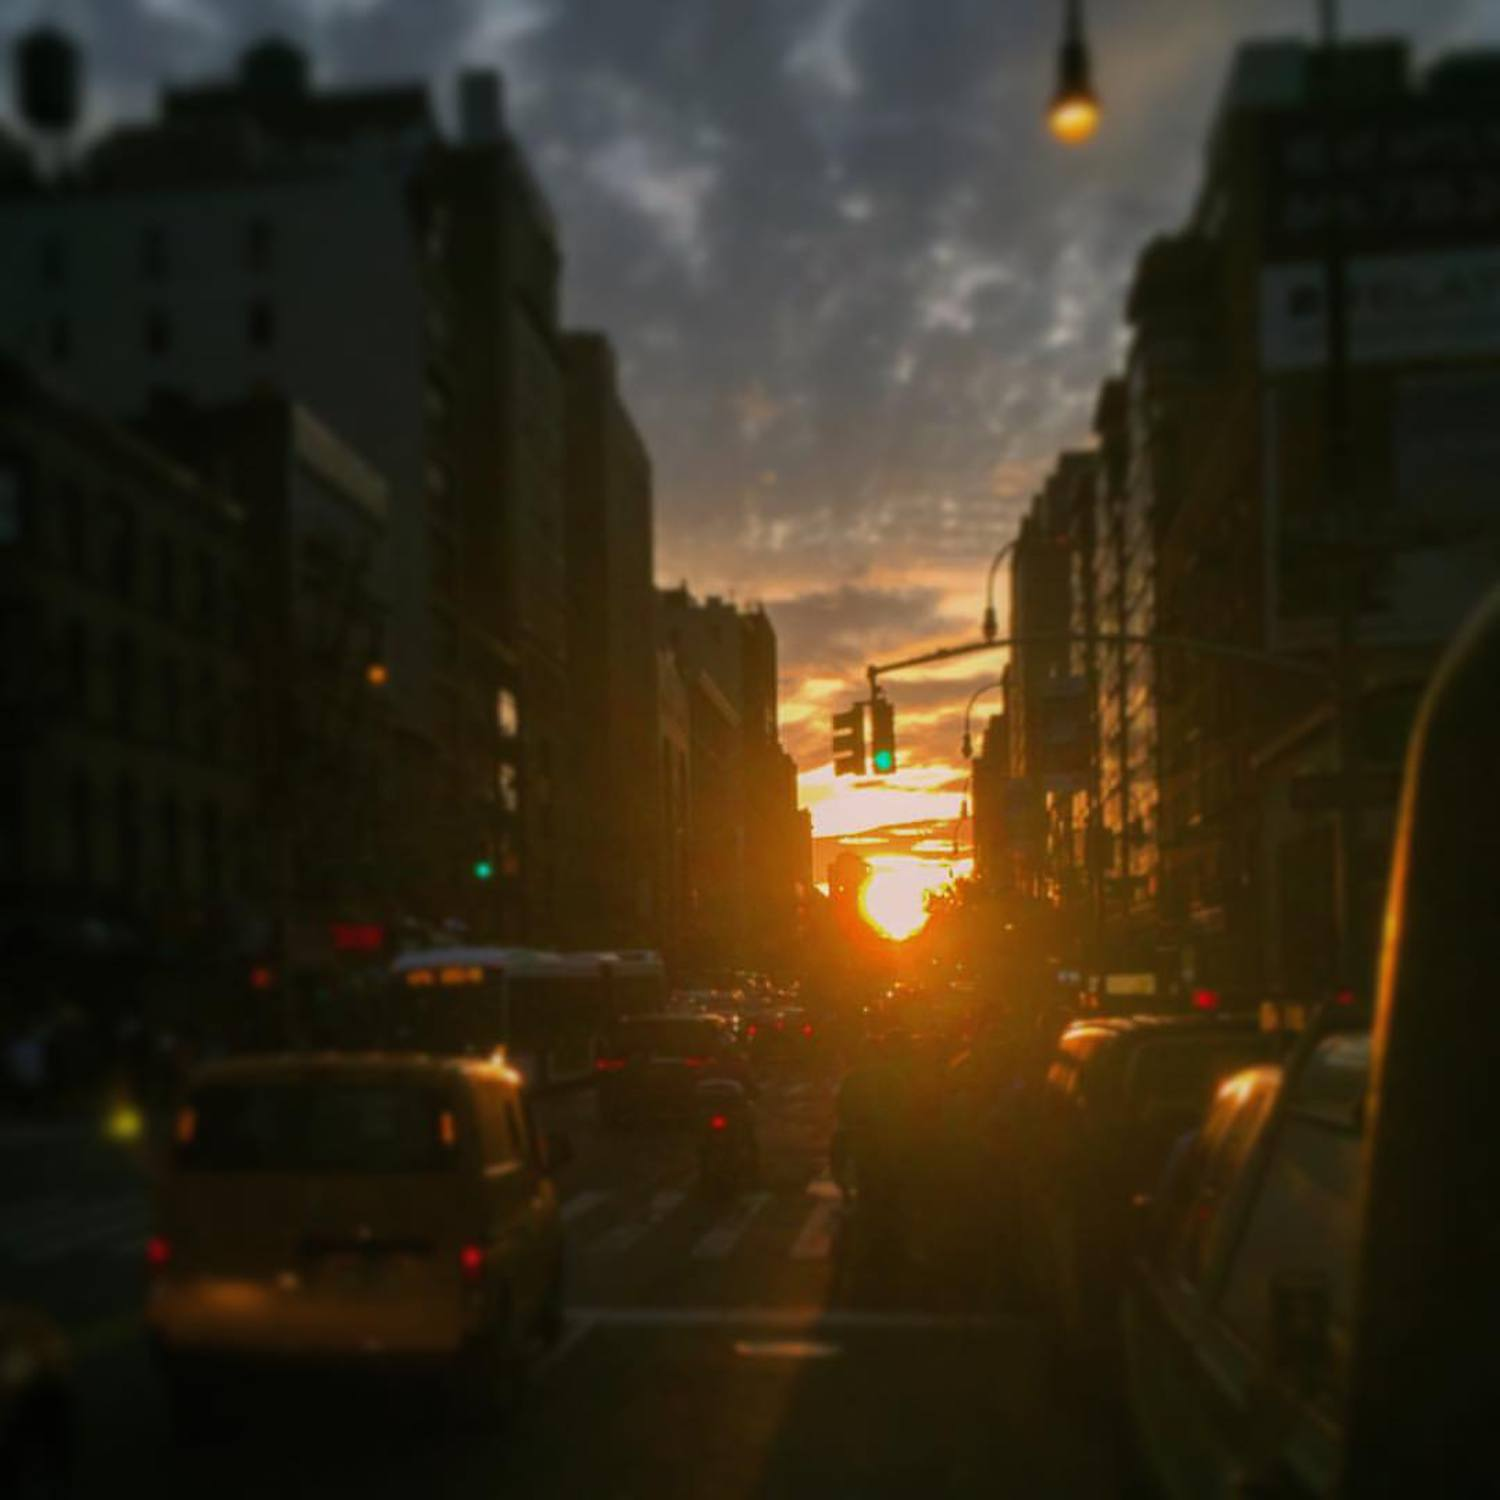 Henge. And then Henge again. #manhattanhenge #newyorkcity #nyc #sunset